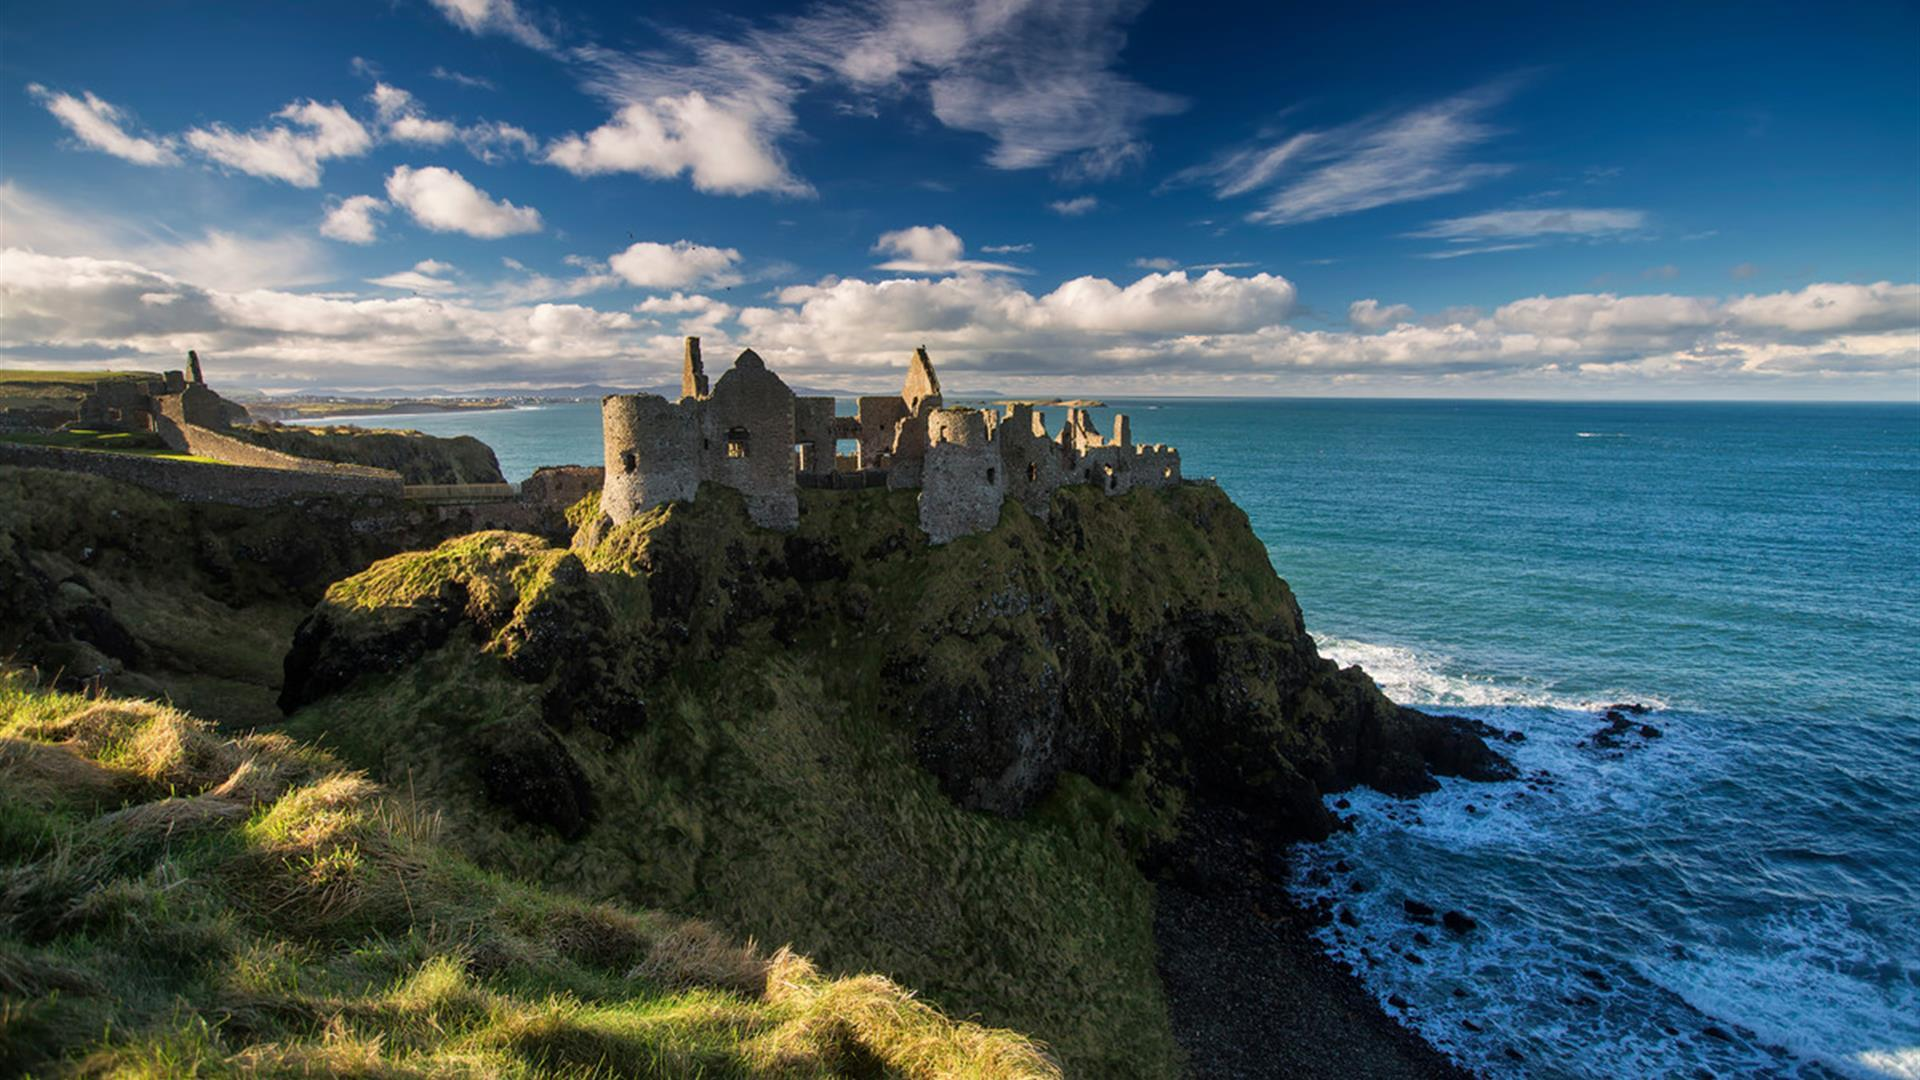 Dunluce Castle Medieval Irish Castle on the Antrim Coast ...